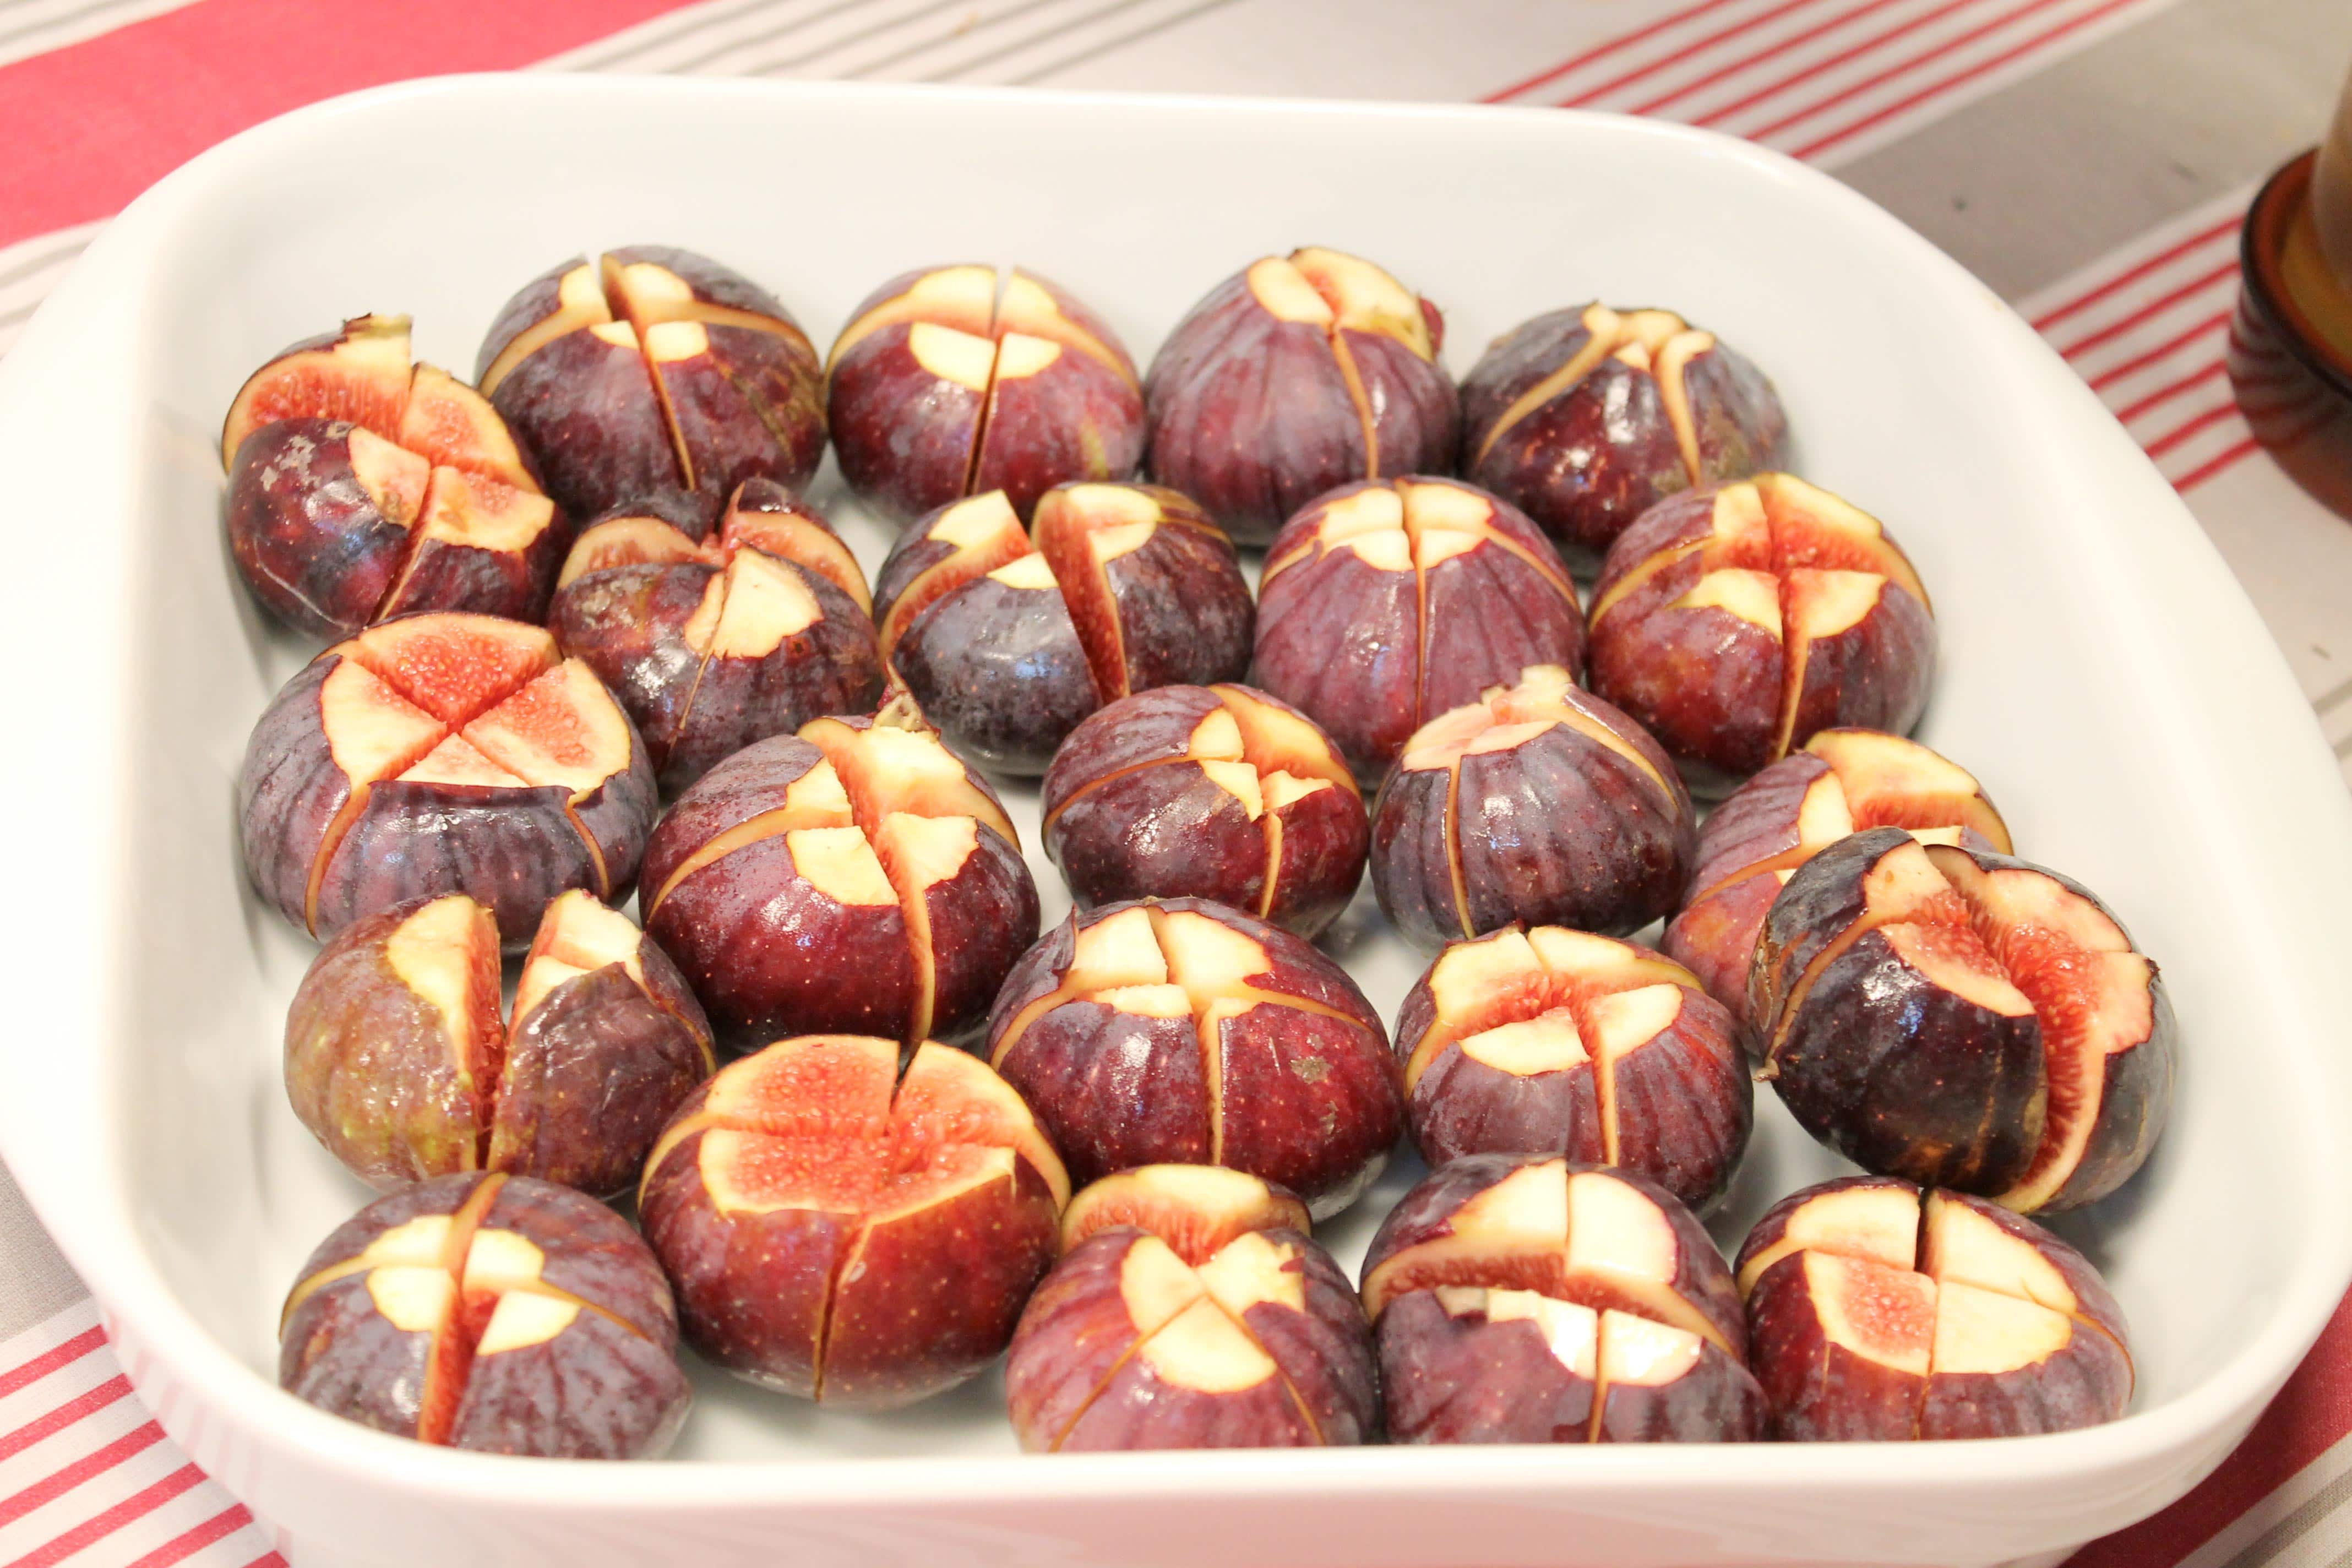 Wine and cooking class, figs ready to bake